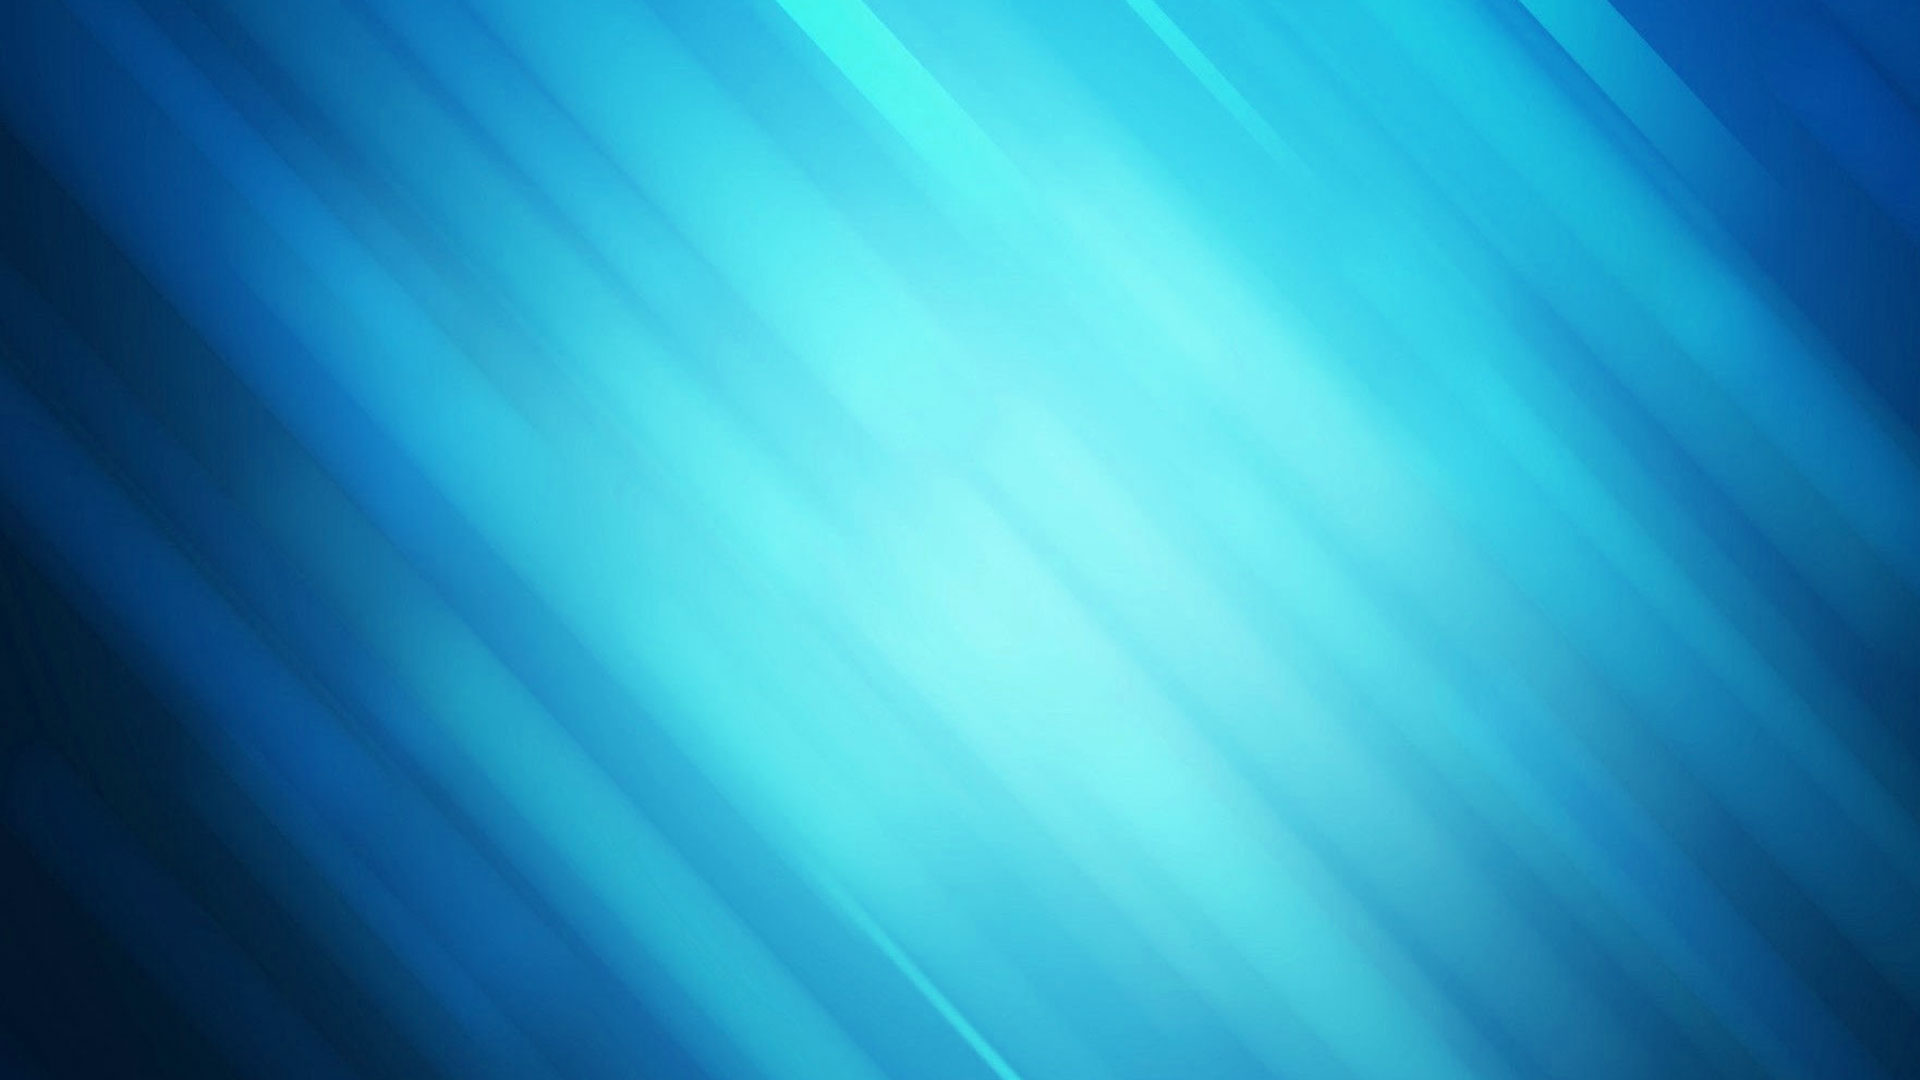 blue-presentation-background